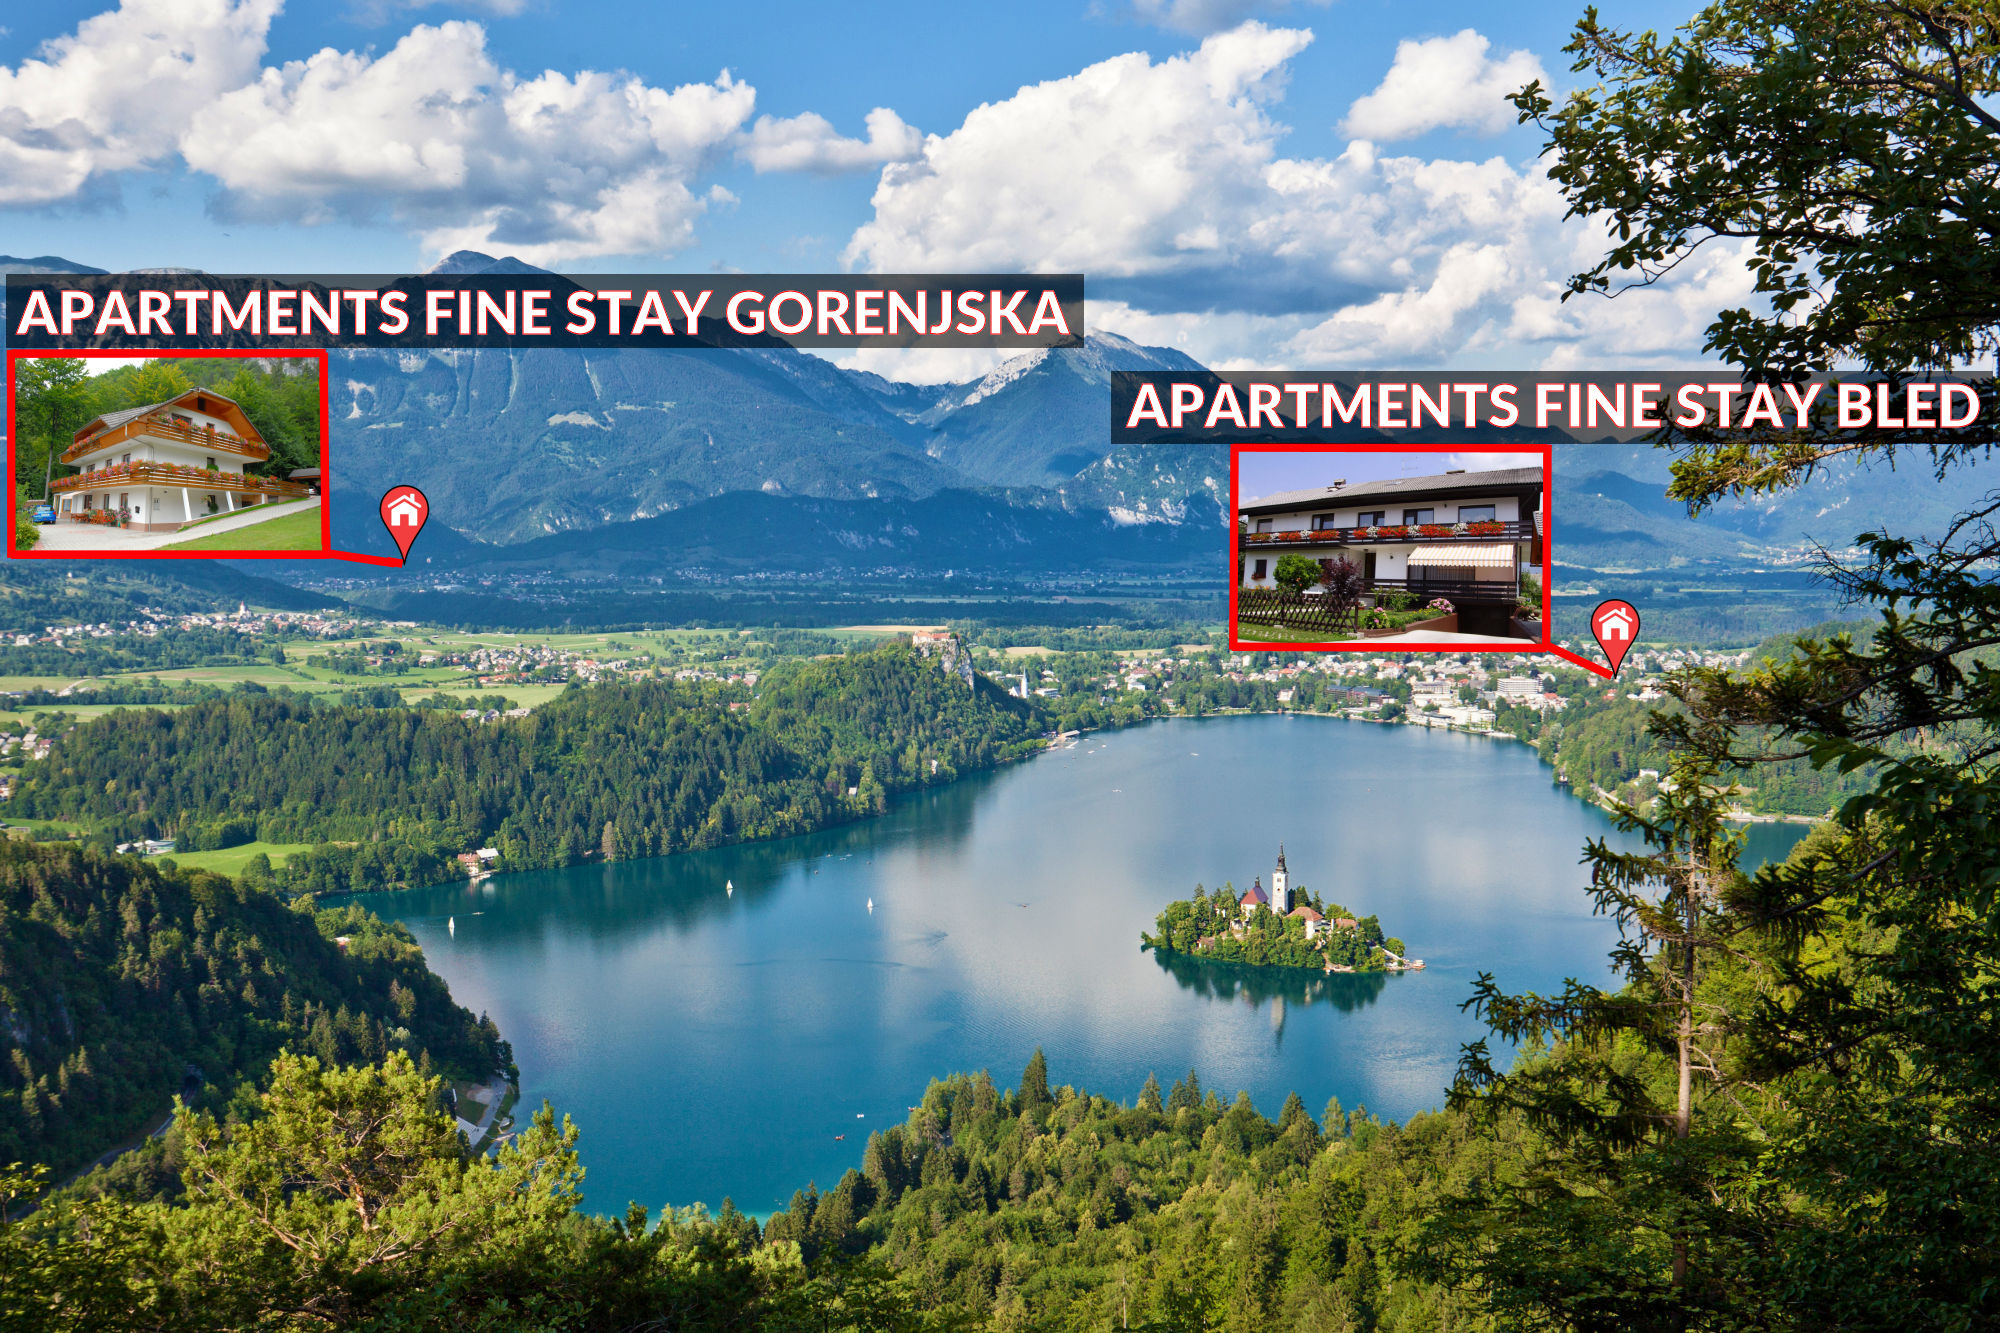 Lake Bled and the location of Apartments Fine Stay Slovenia